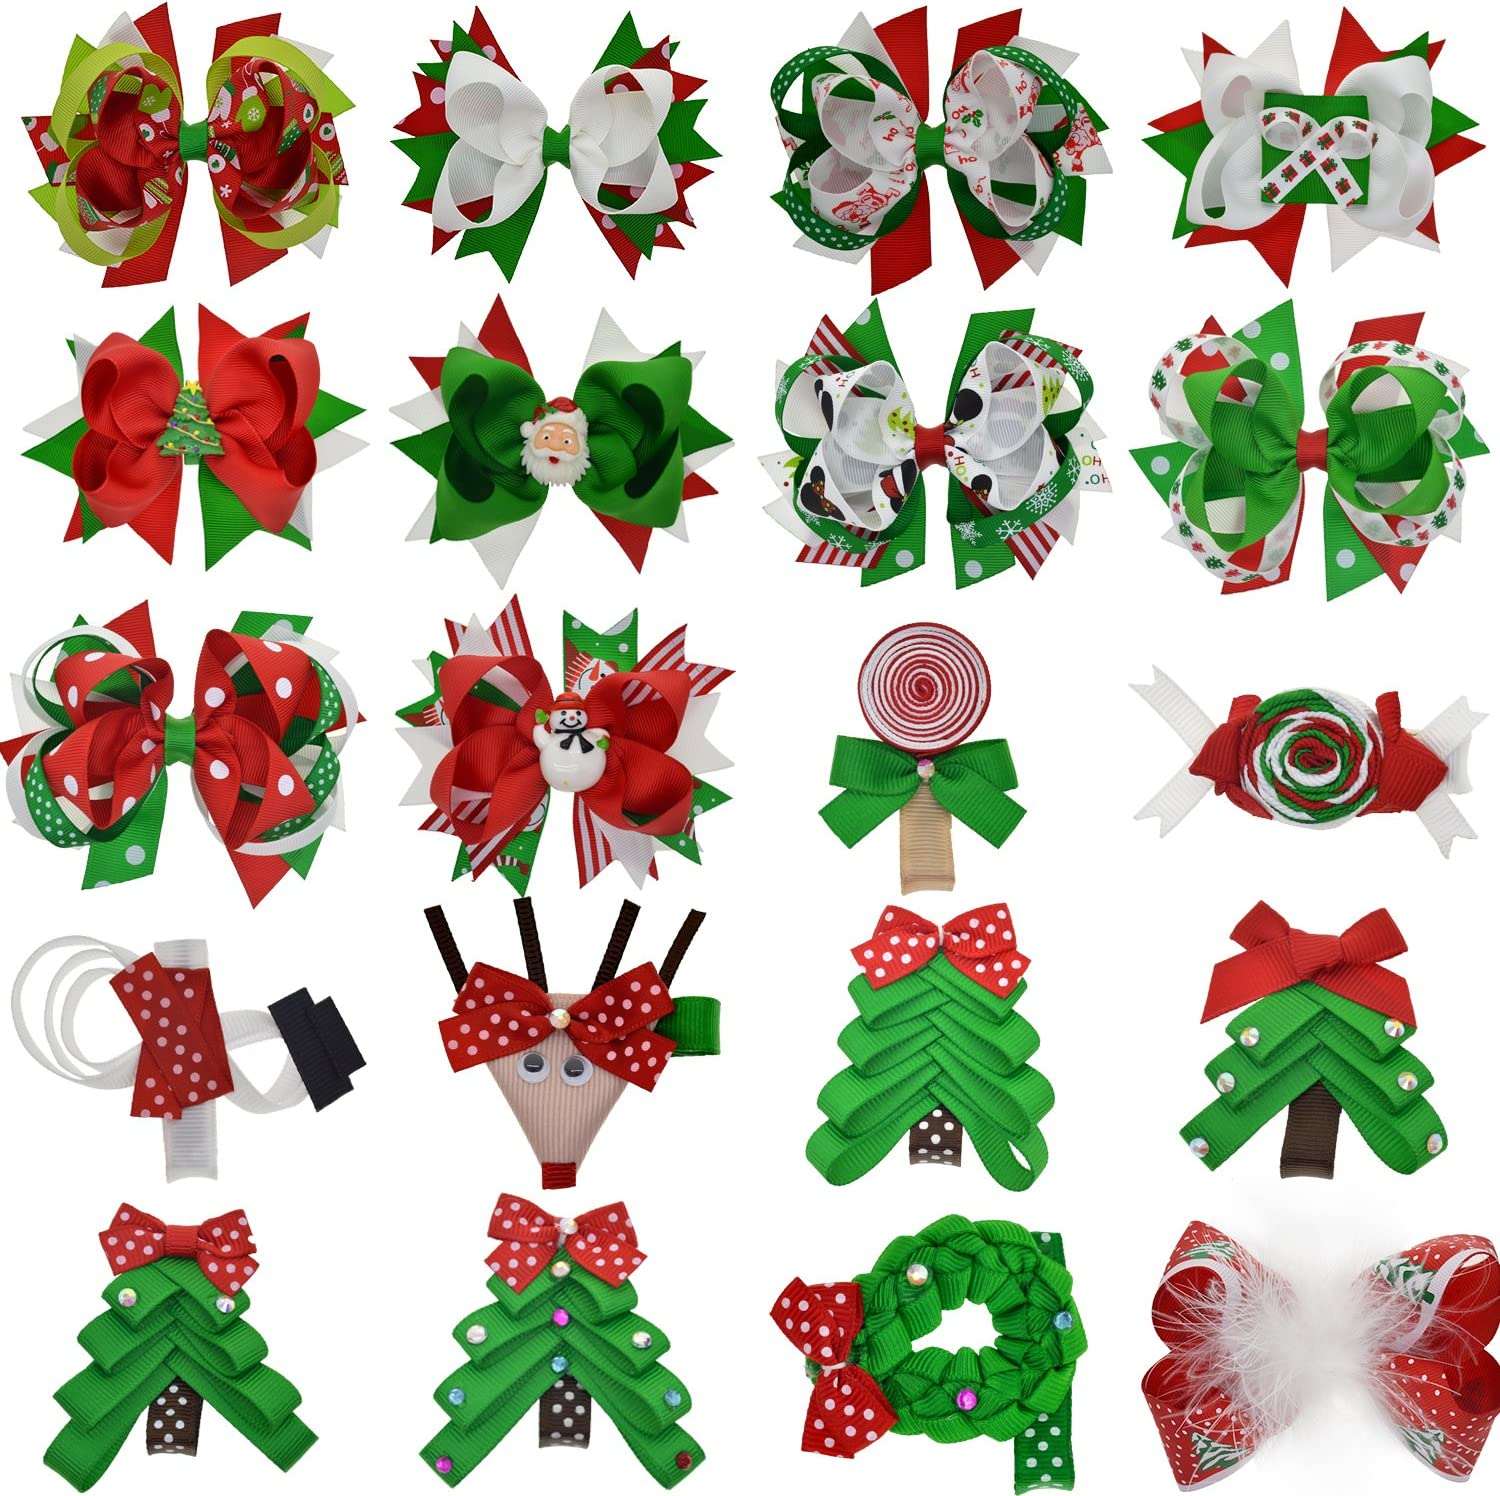 amazon com cute christmas hair bow for baby toddlers girls with xmas tree santa claus snowman decor health personal care cute christmas hair bow for baby toddlers girls with xmas tree santa claus snowman decor